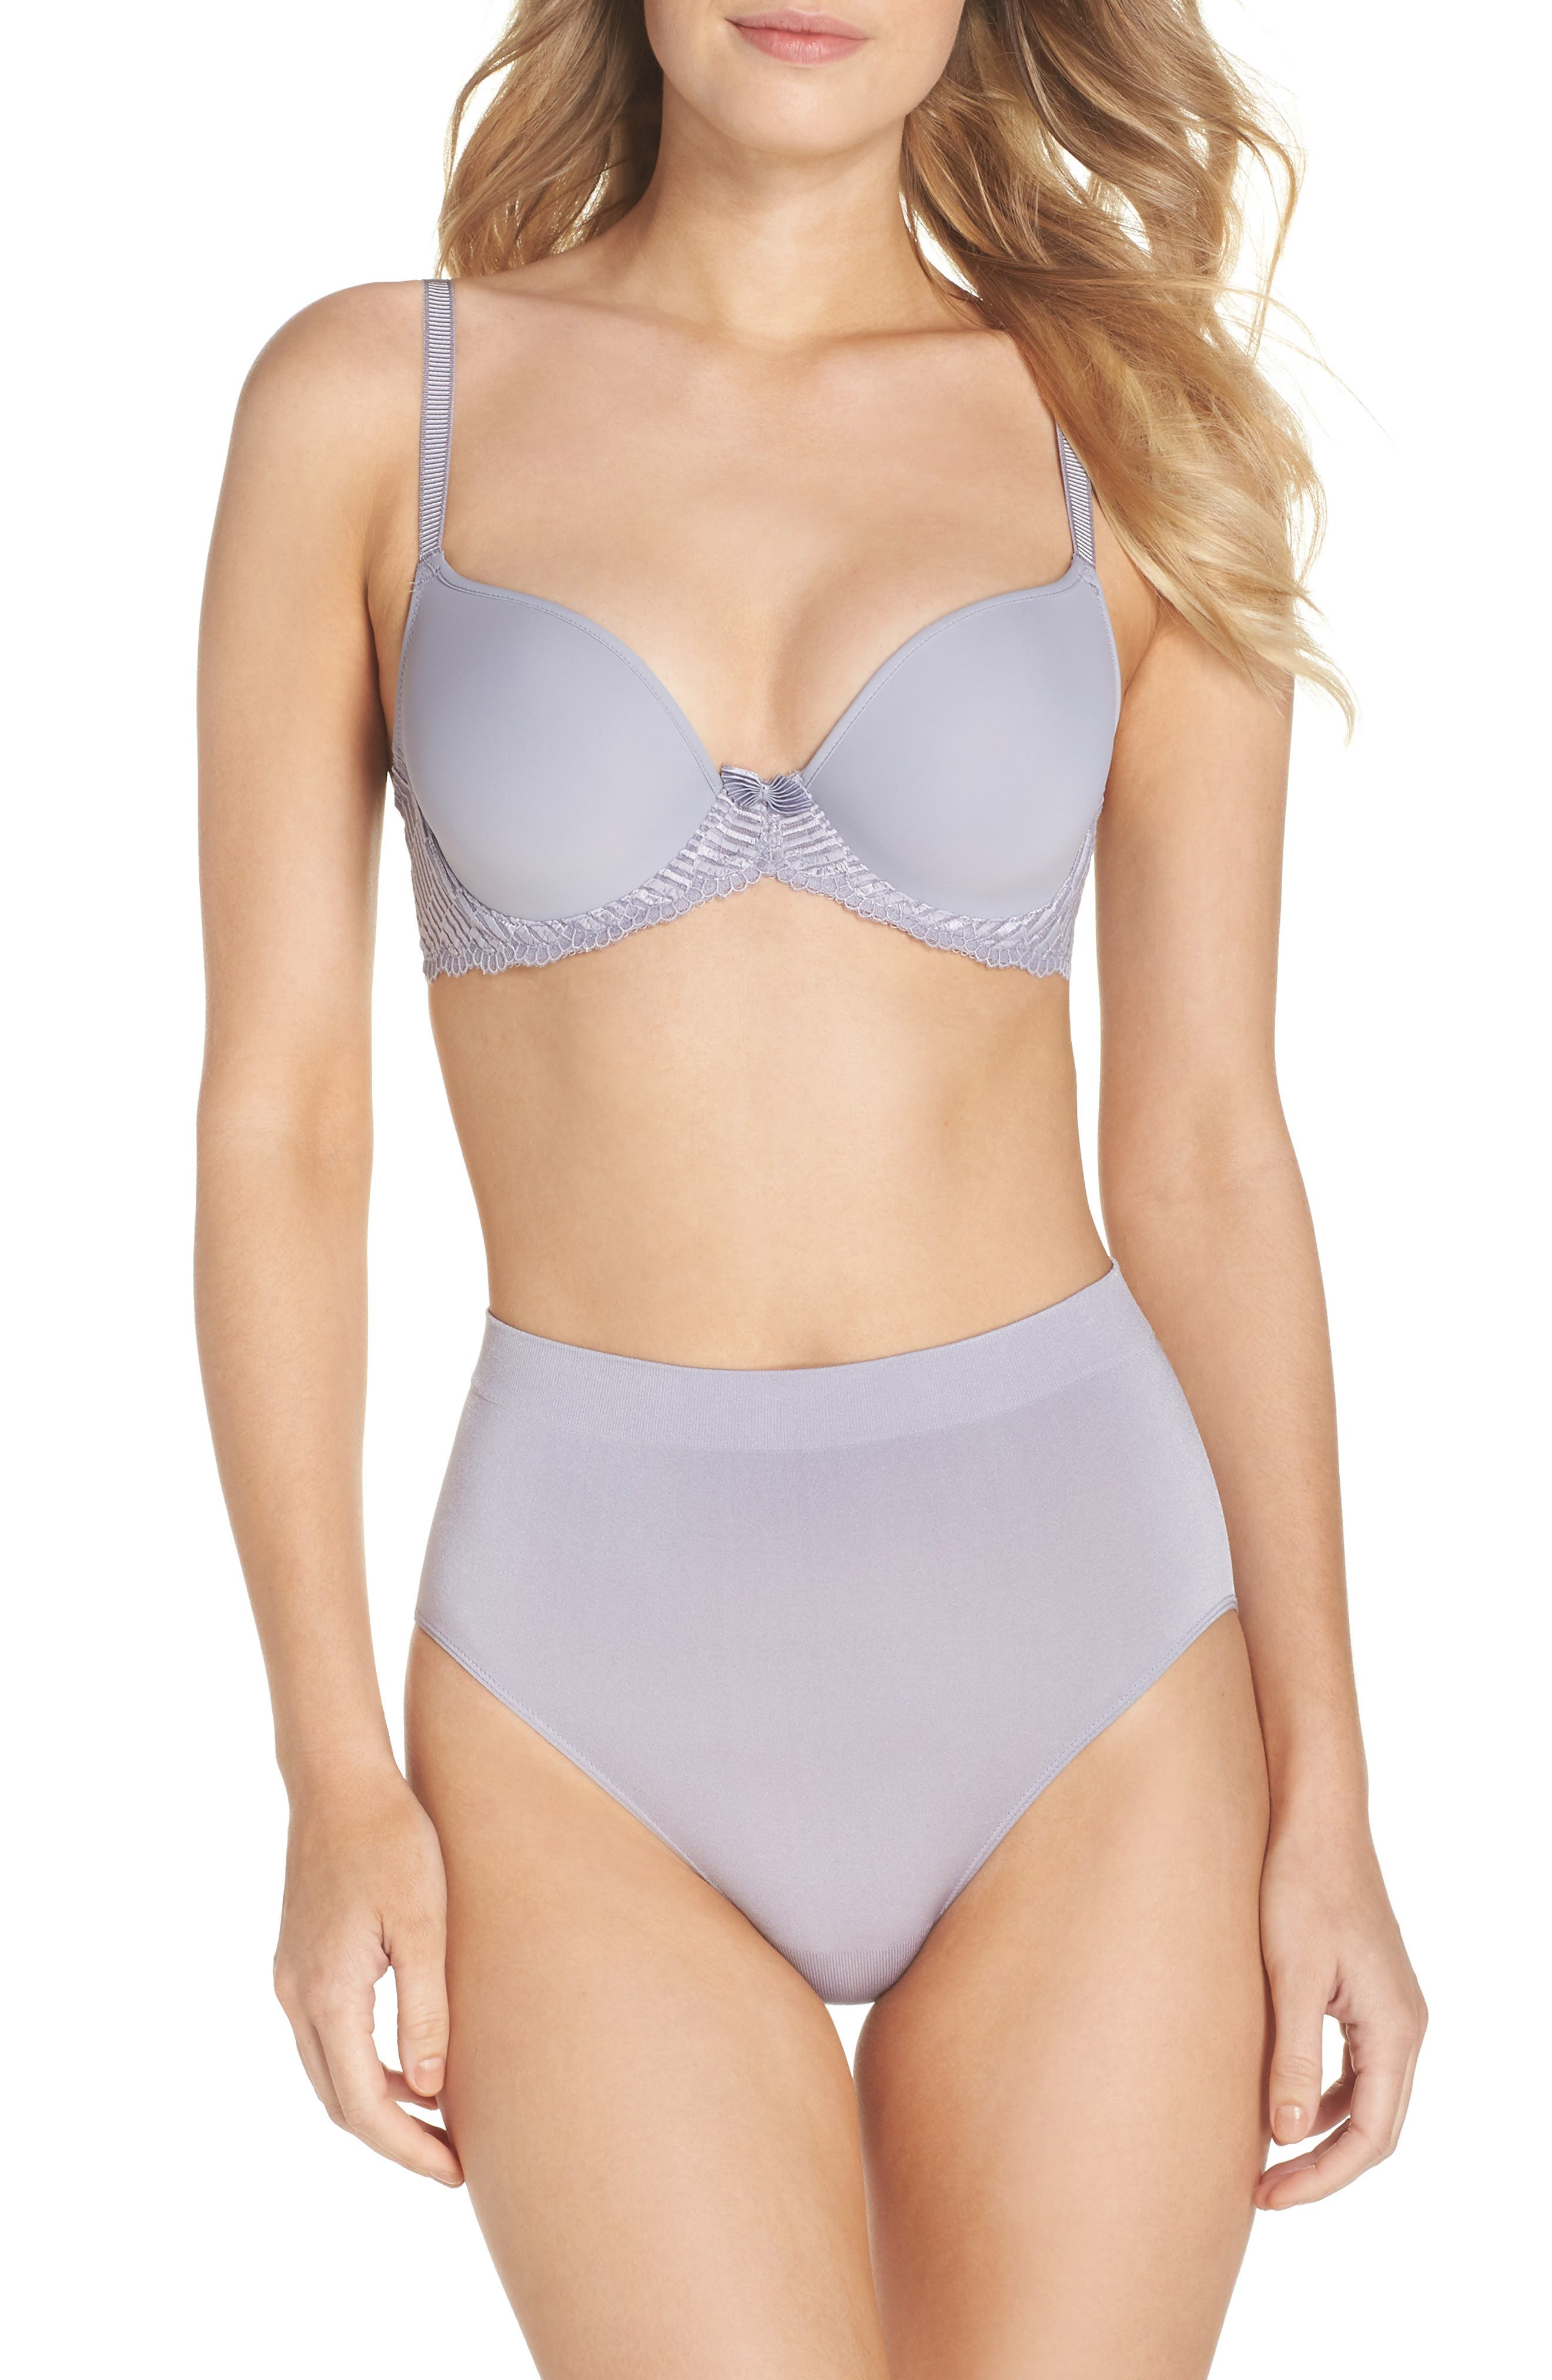 La Femme Molded Underwire Bra,                             Alternate thumbnail 4, color,                             Lilac Gray